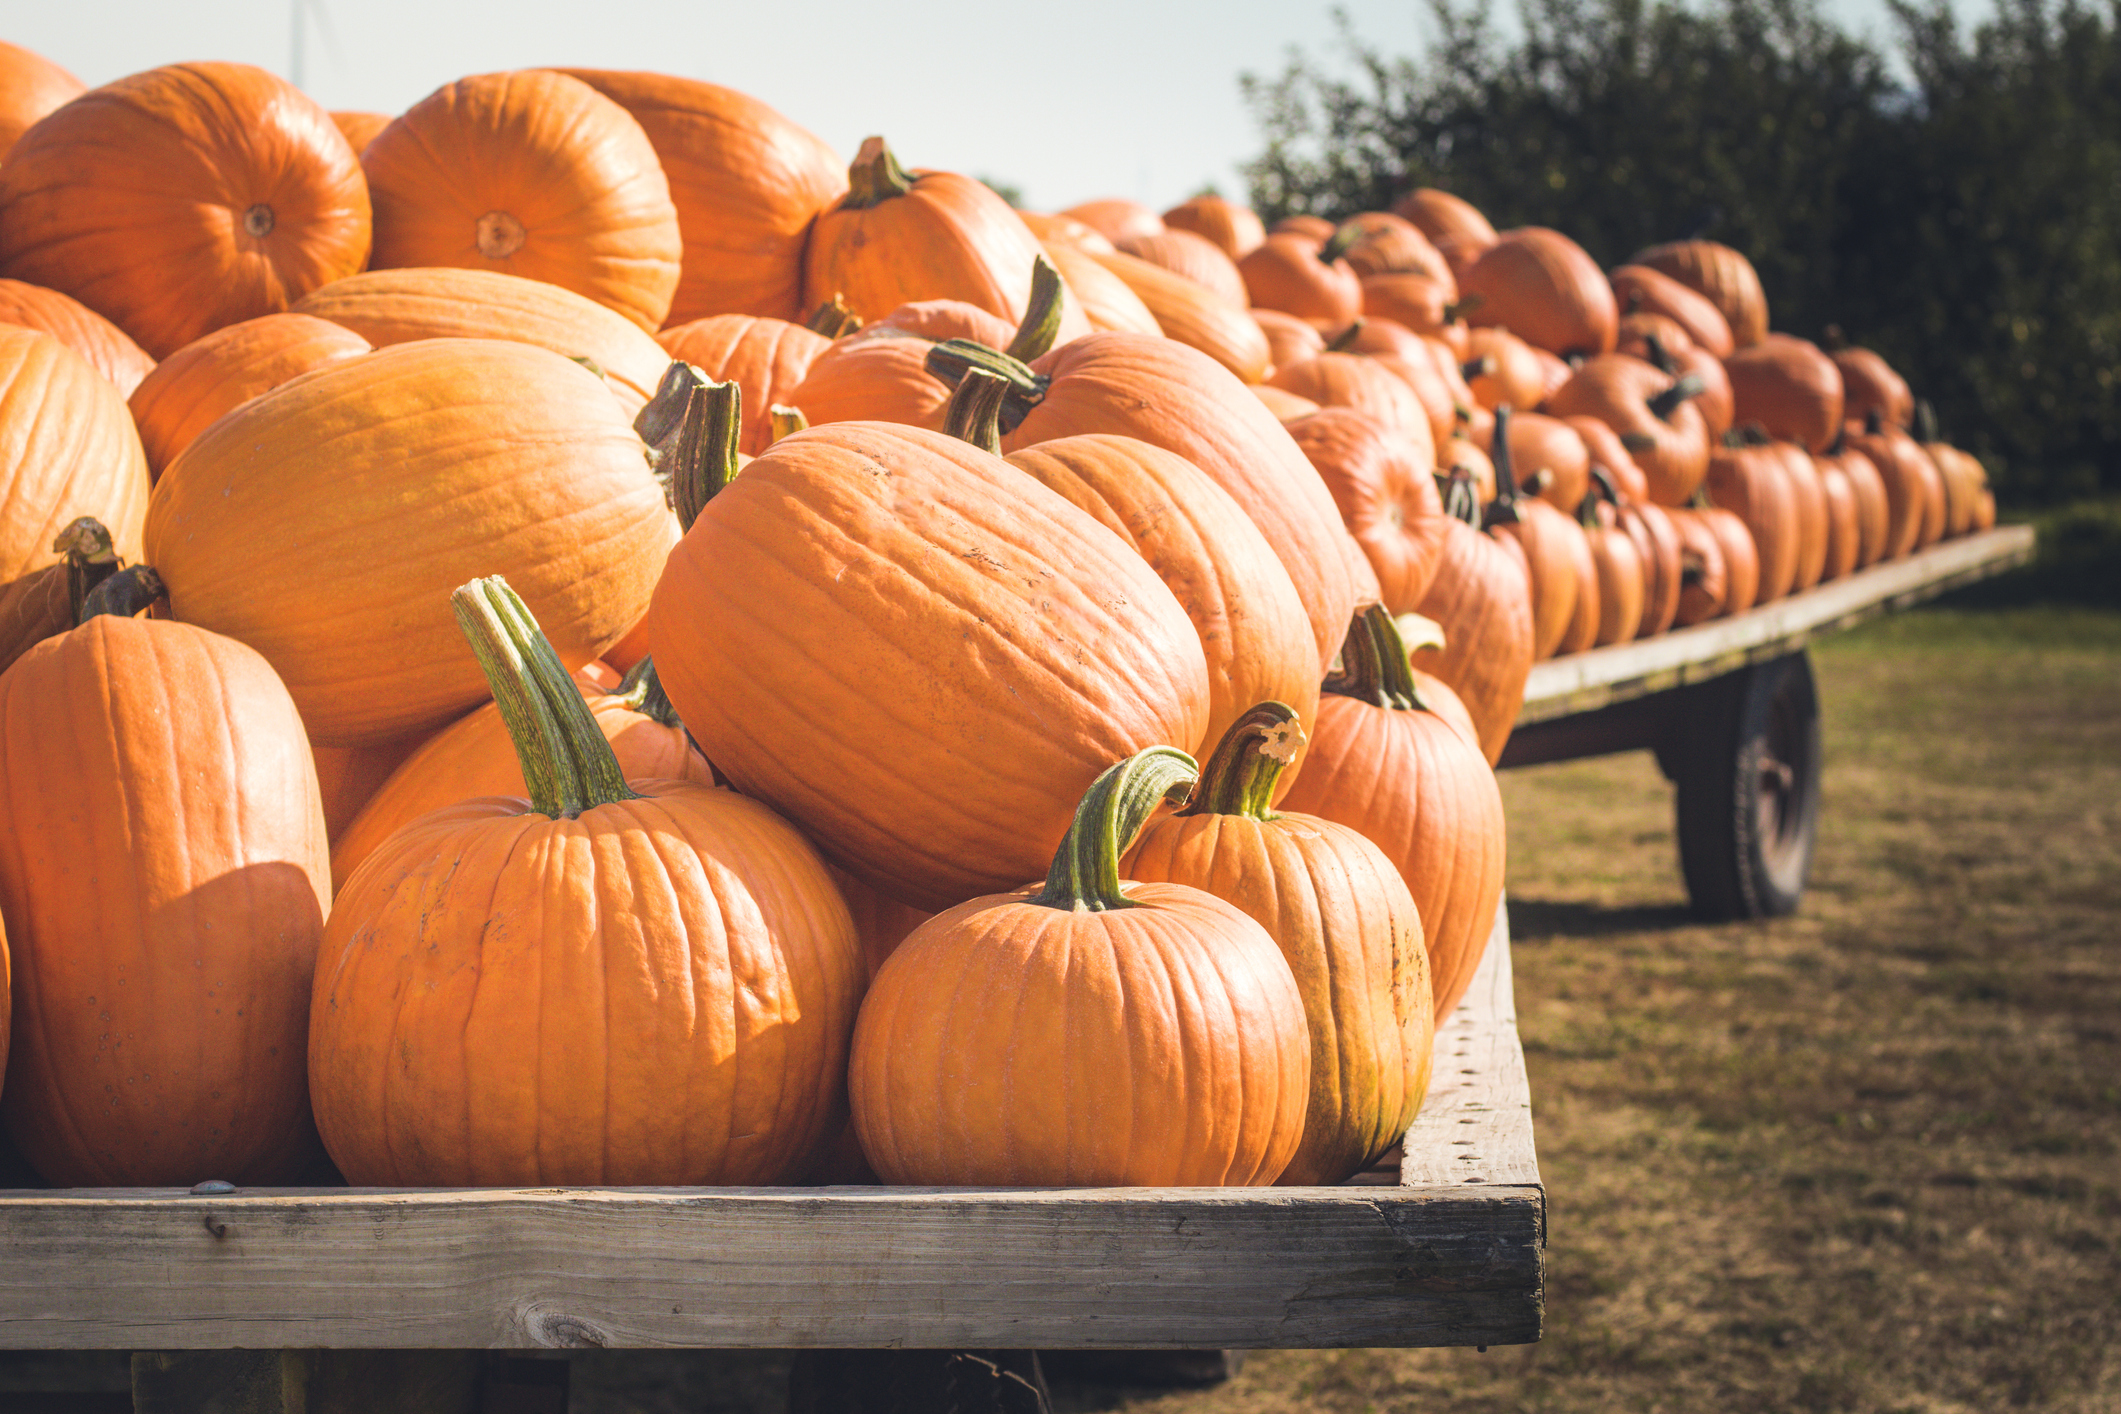 Pumpkins (Getty Images)